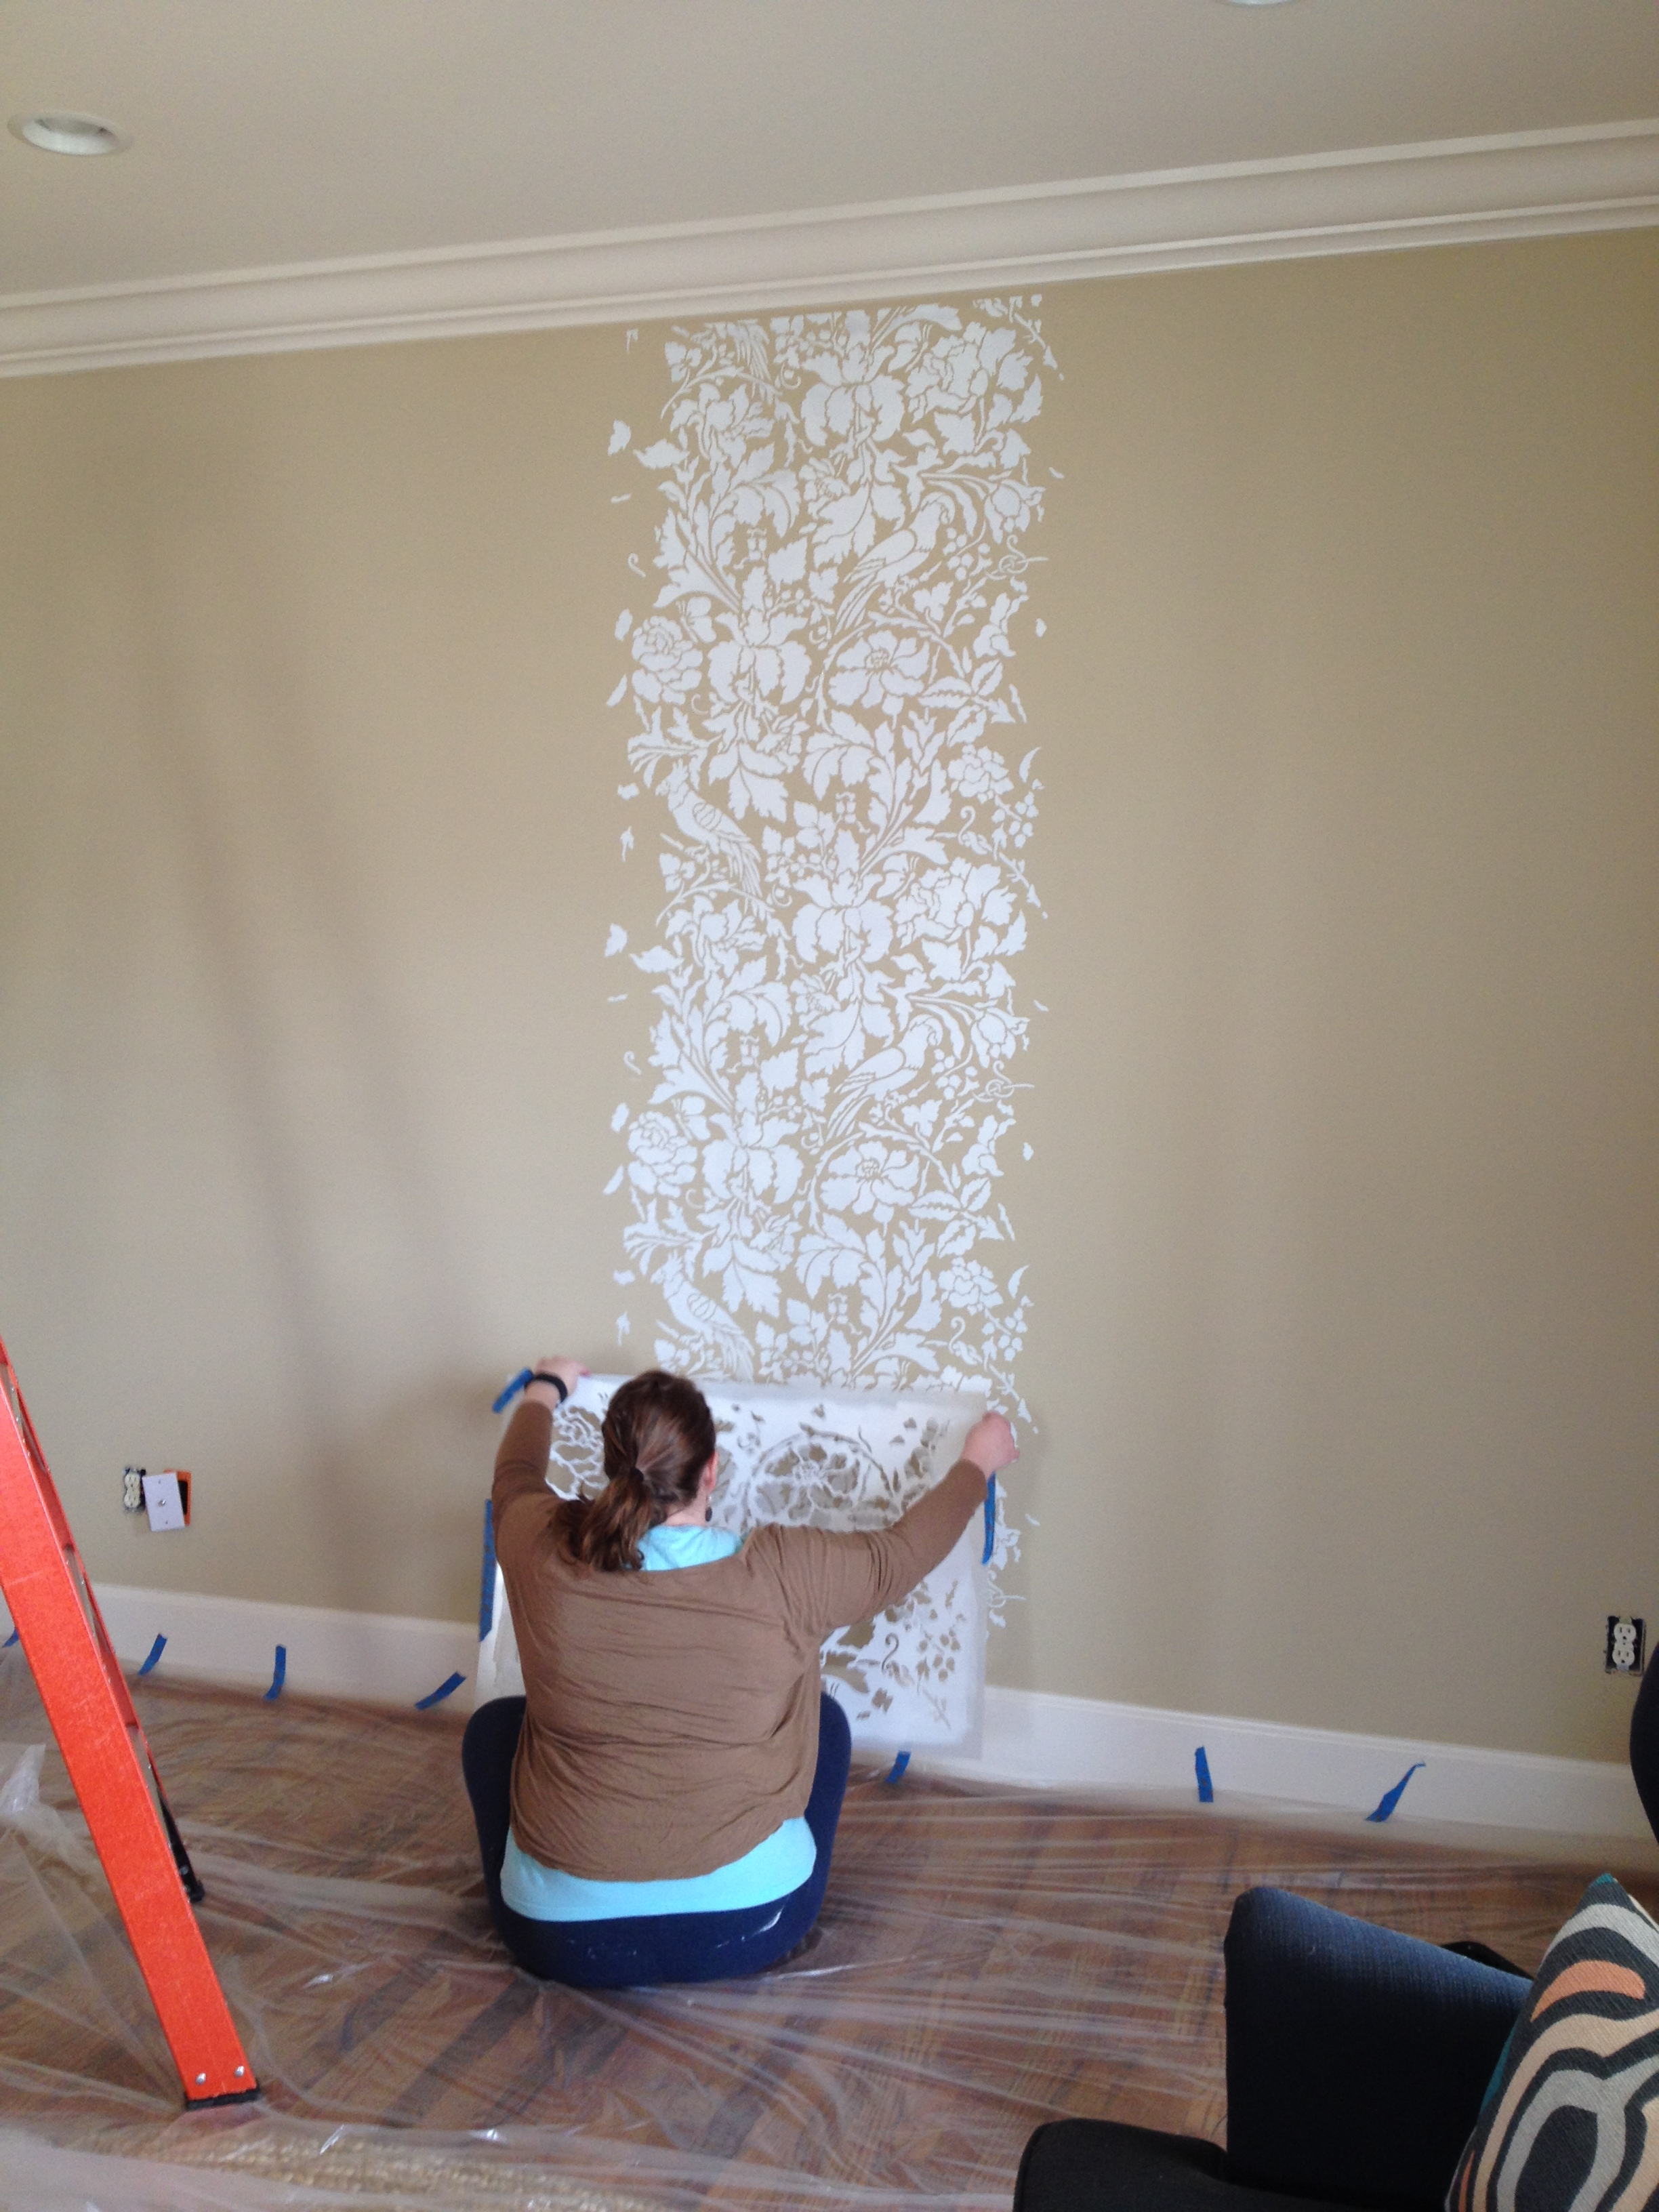 Home decorating personal life and small business blog by A wall painting